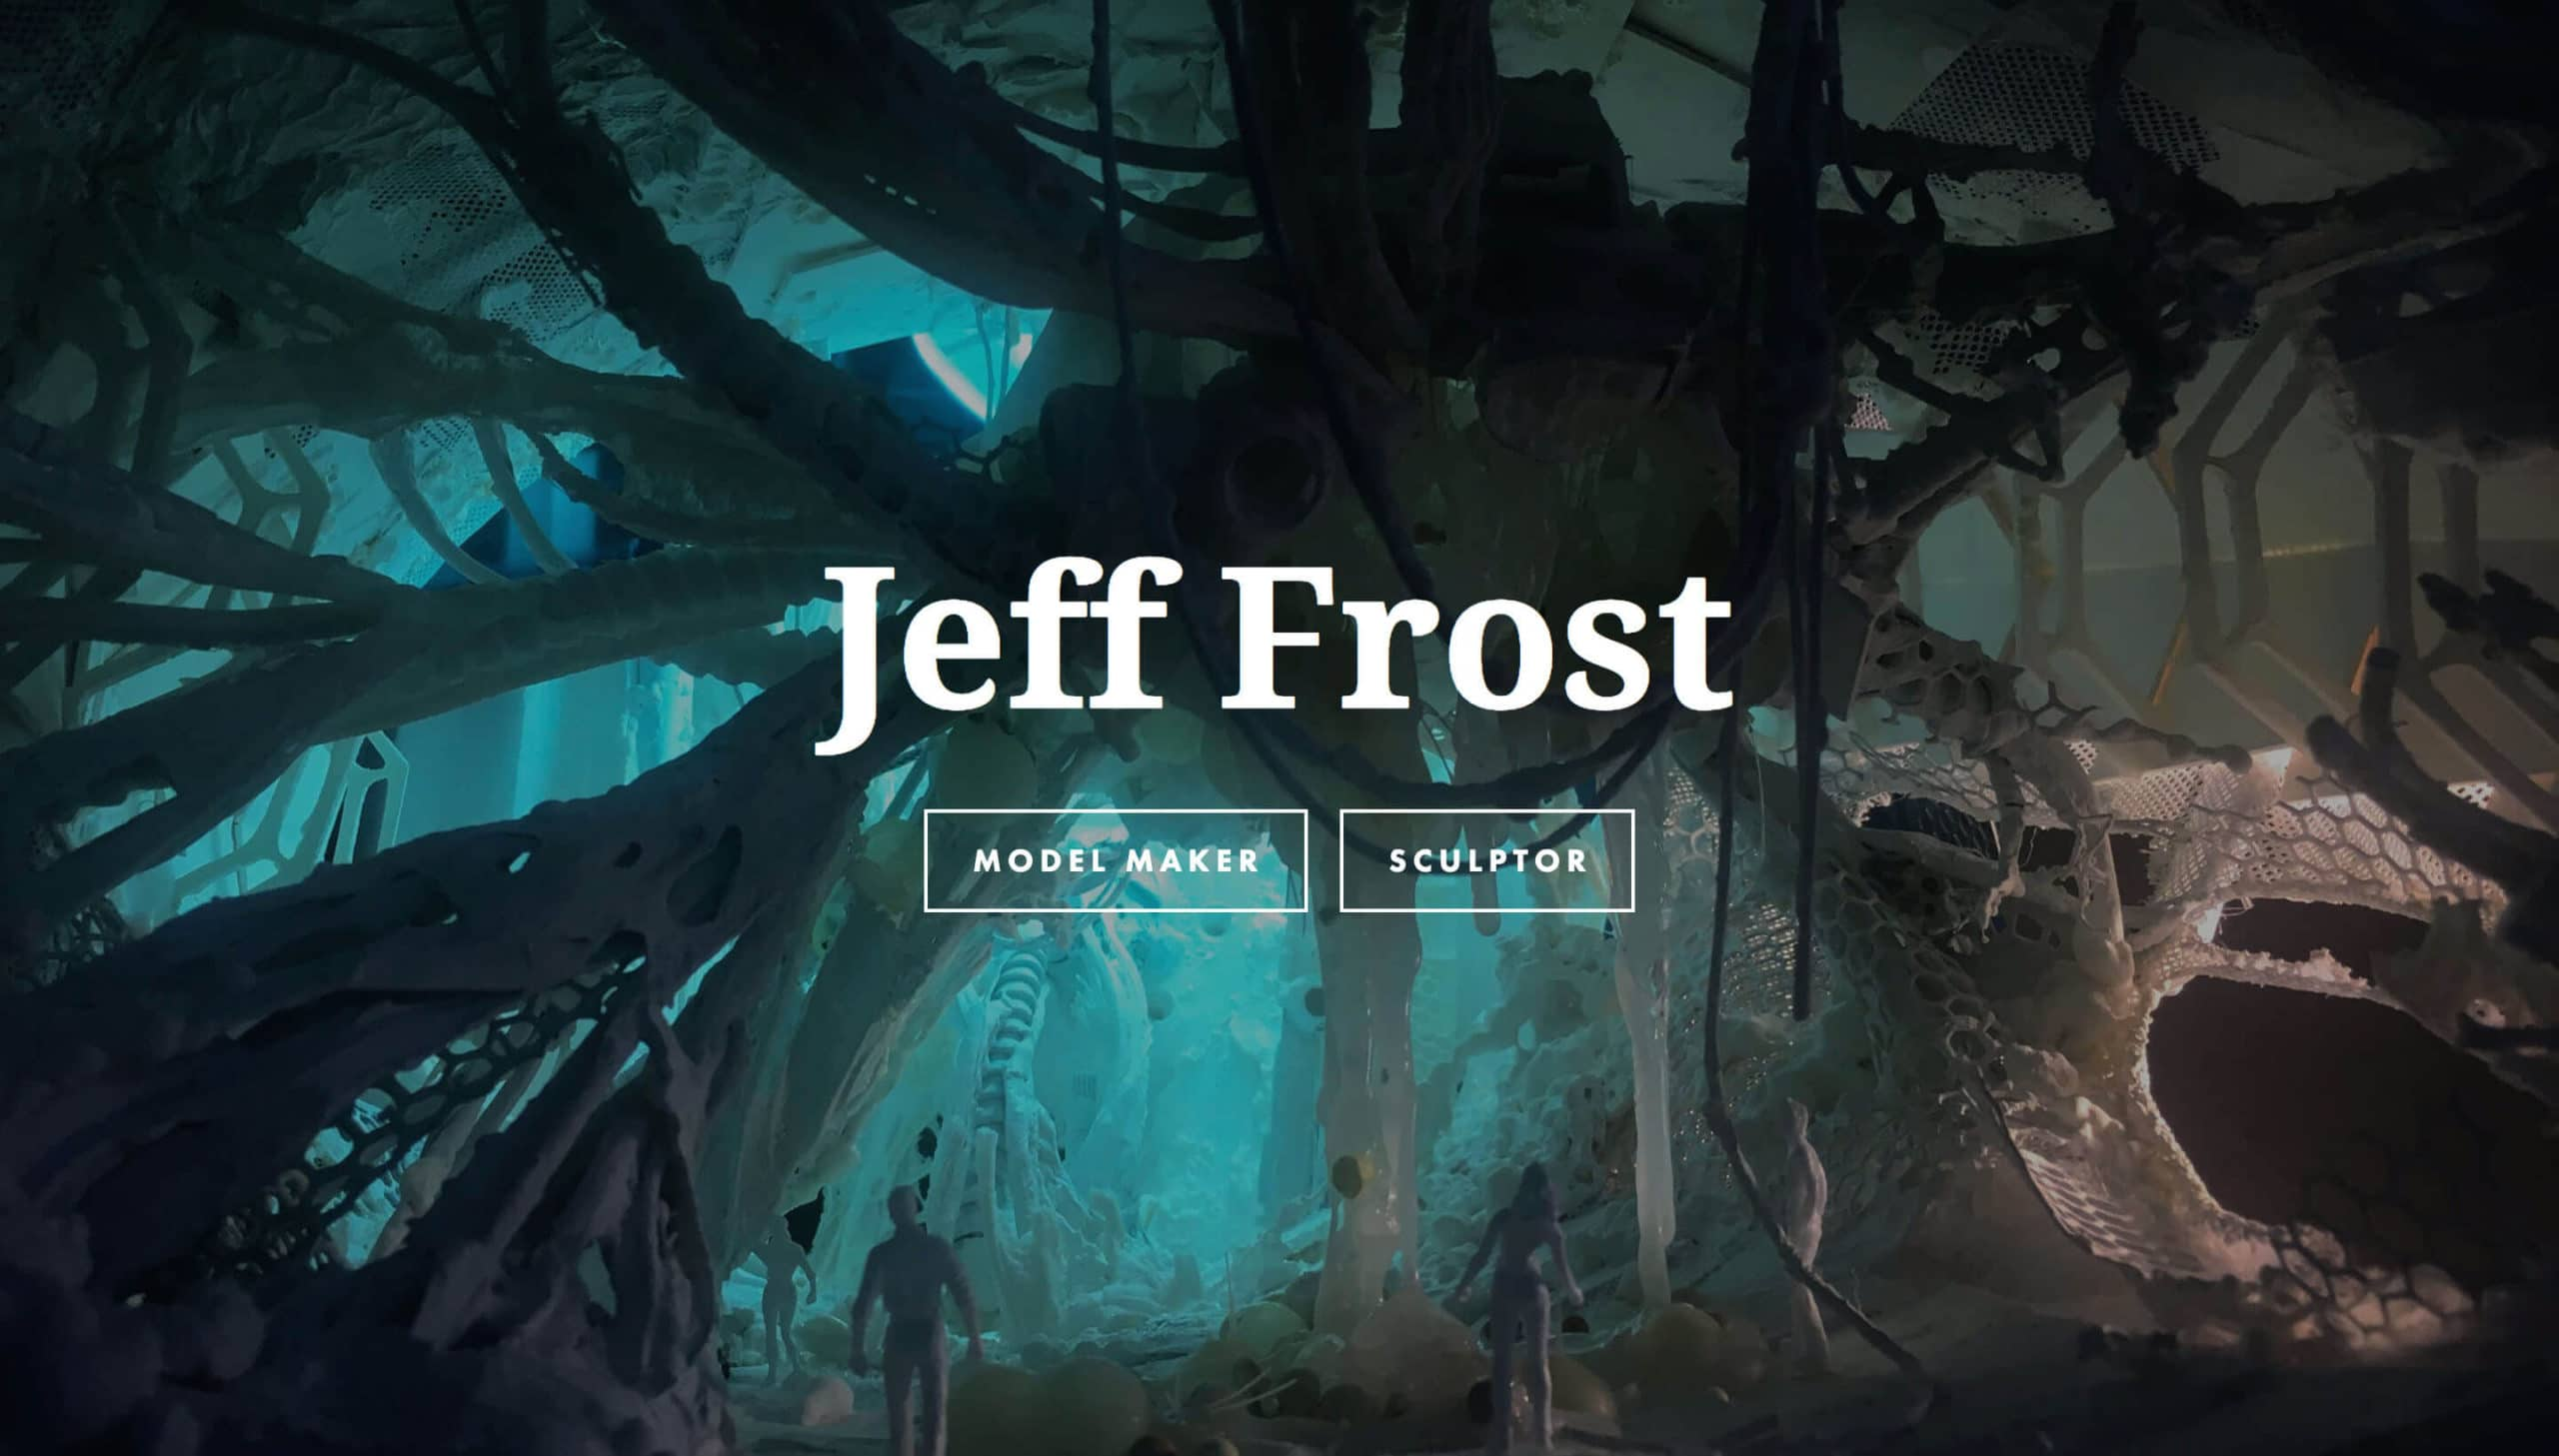 Jeff Frost home page